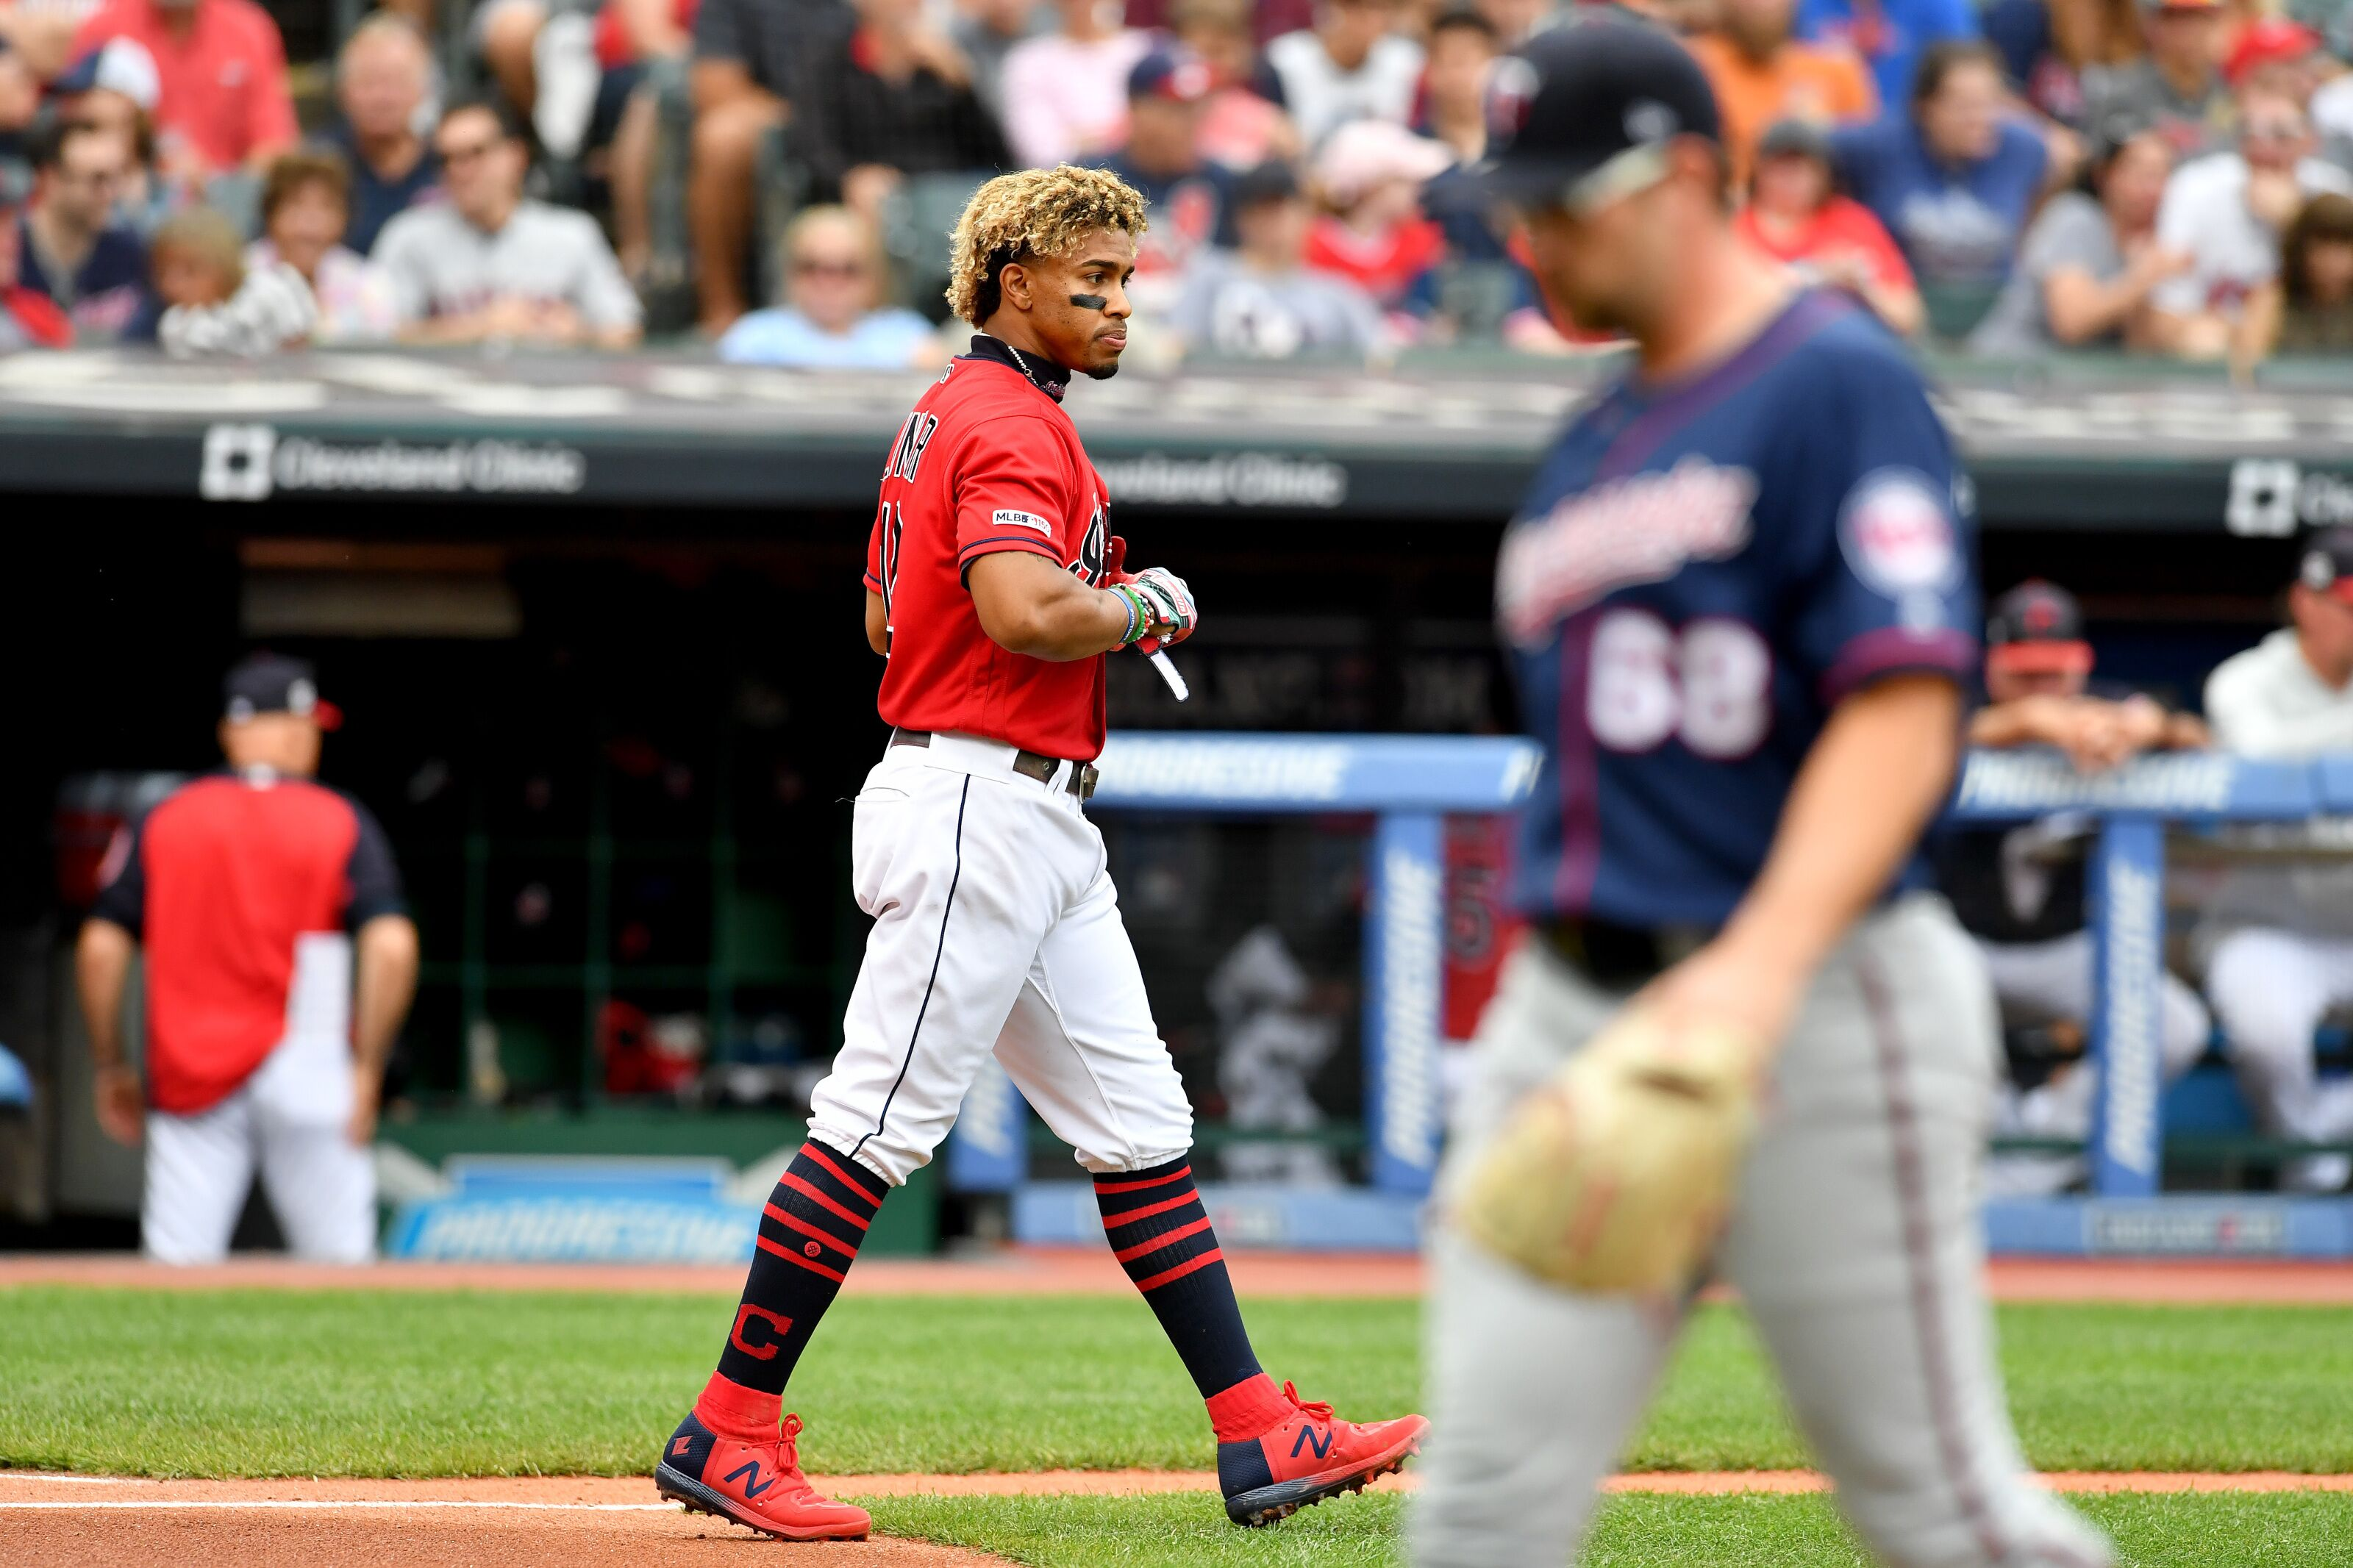 Indians: No real clarity on Francisco Lindor's fate until Opening Day